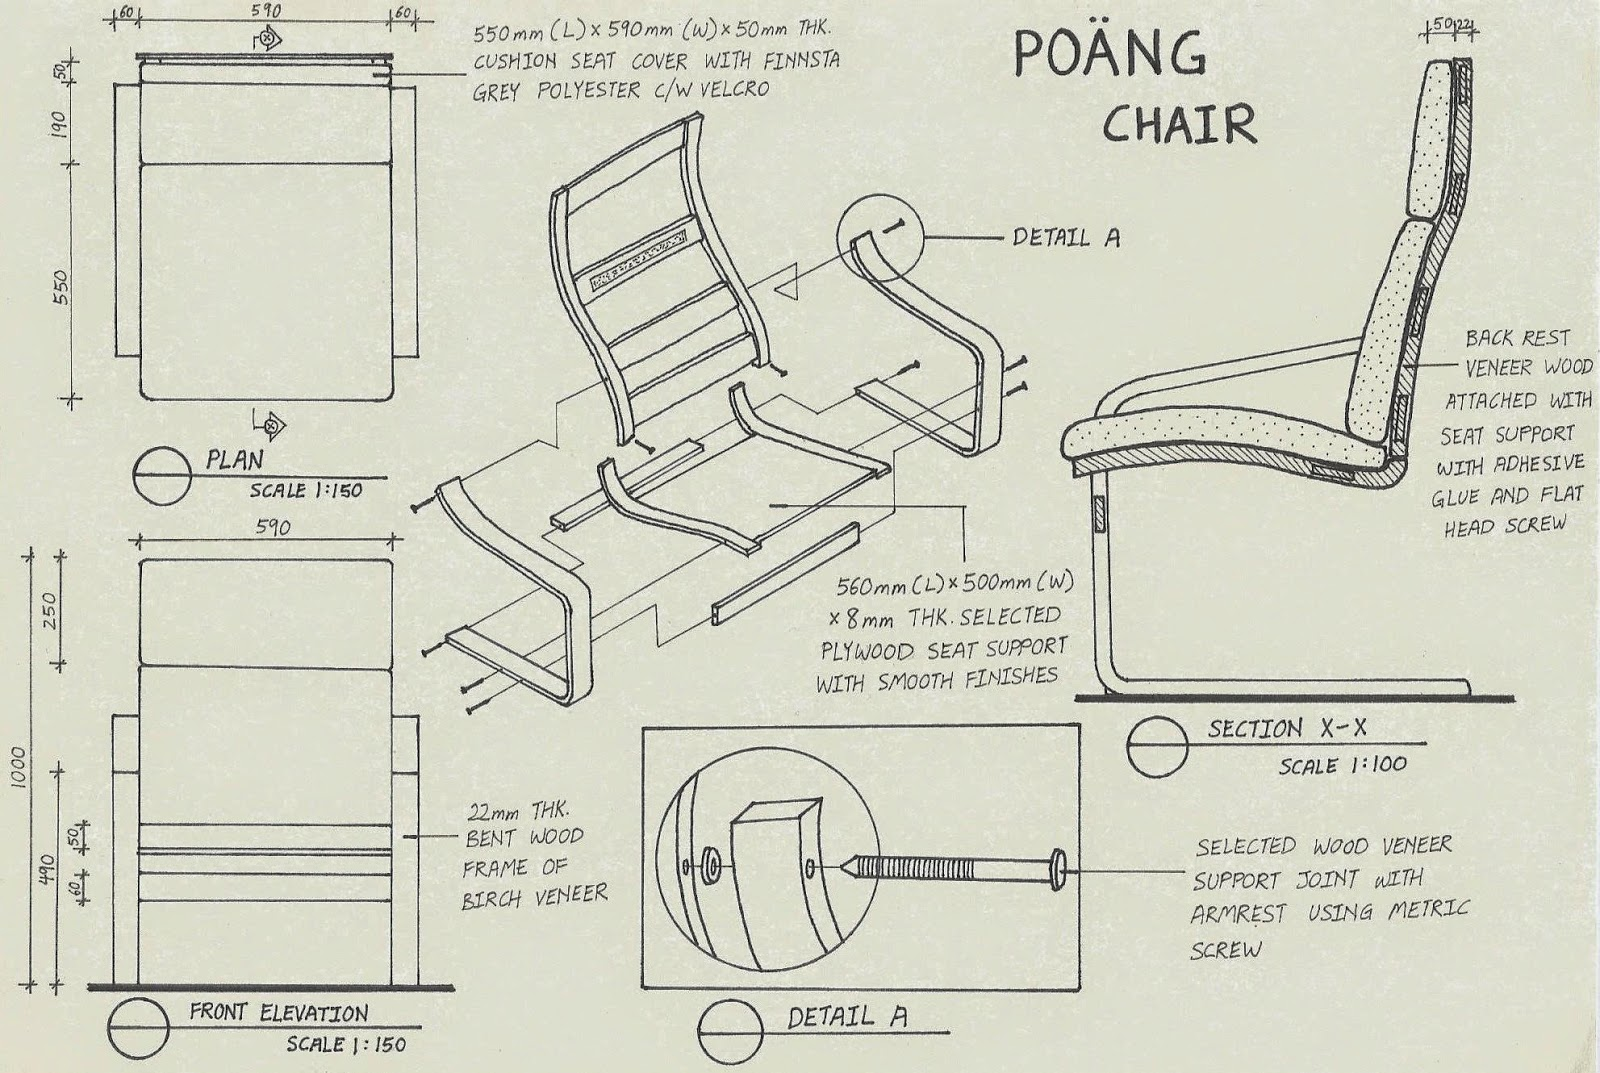 chair design drawing. Detail Drawing For POANG Series Chair By IKEA. This Assembly Consists Of Plan View, Front Elevation, Cut Section And Blown Up View Chair, Design